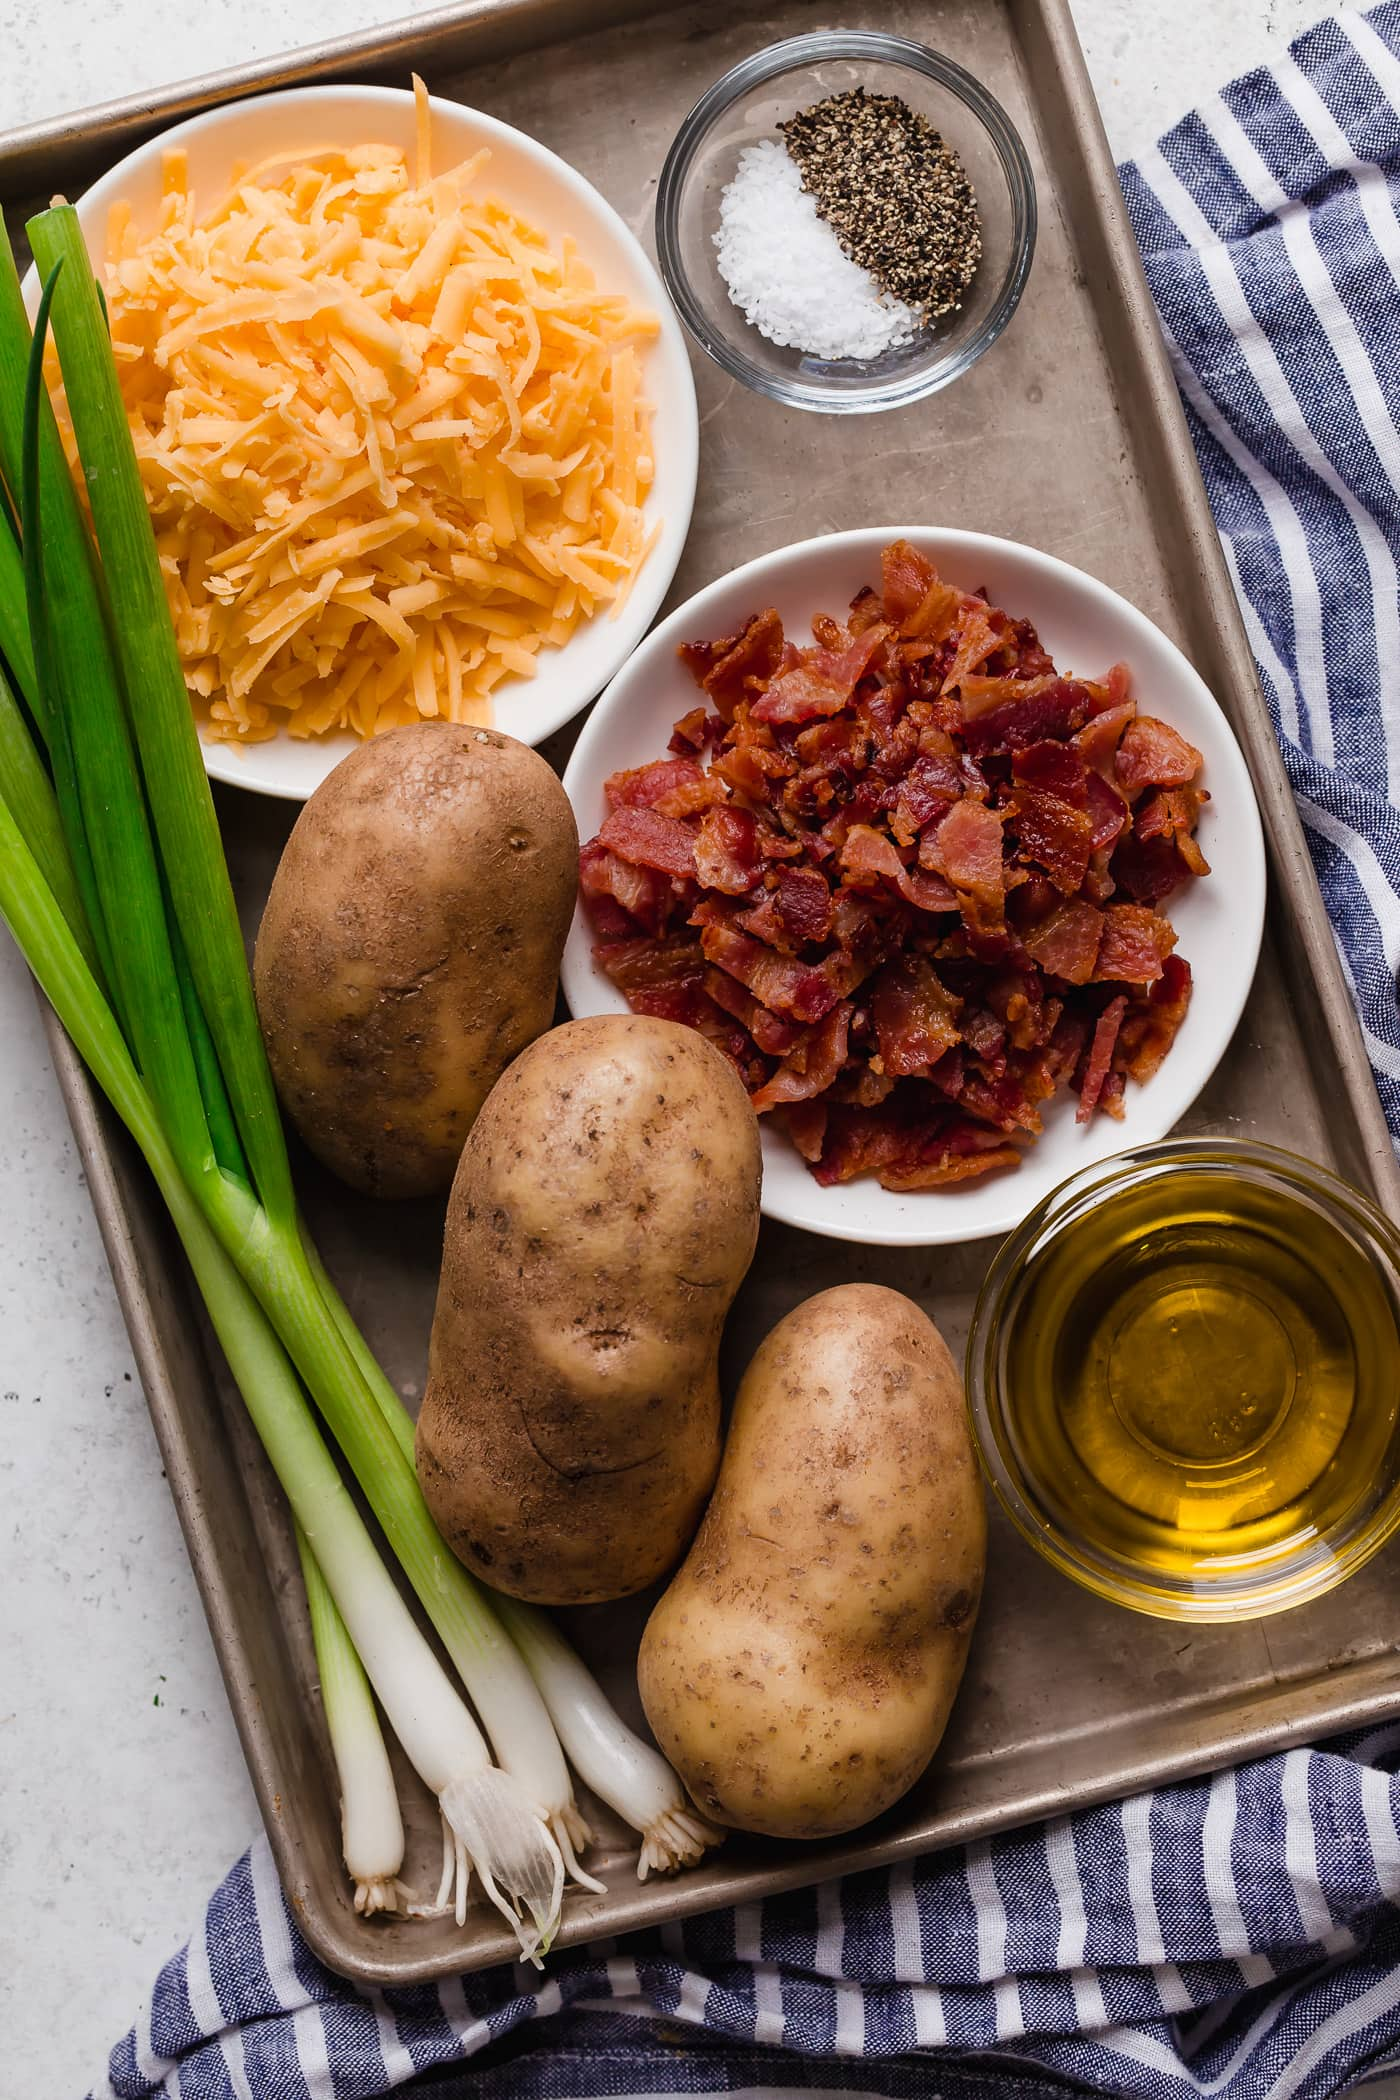 Ingredients needed to make cheesy potatoes shown here including potatoes, bacon, cheddar cheese, olive oil, seasoning.